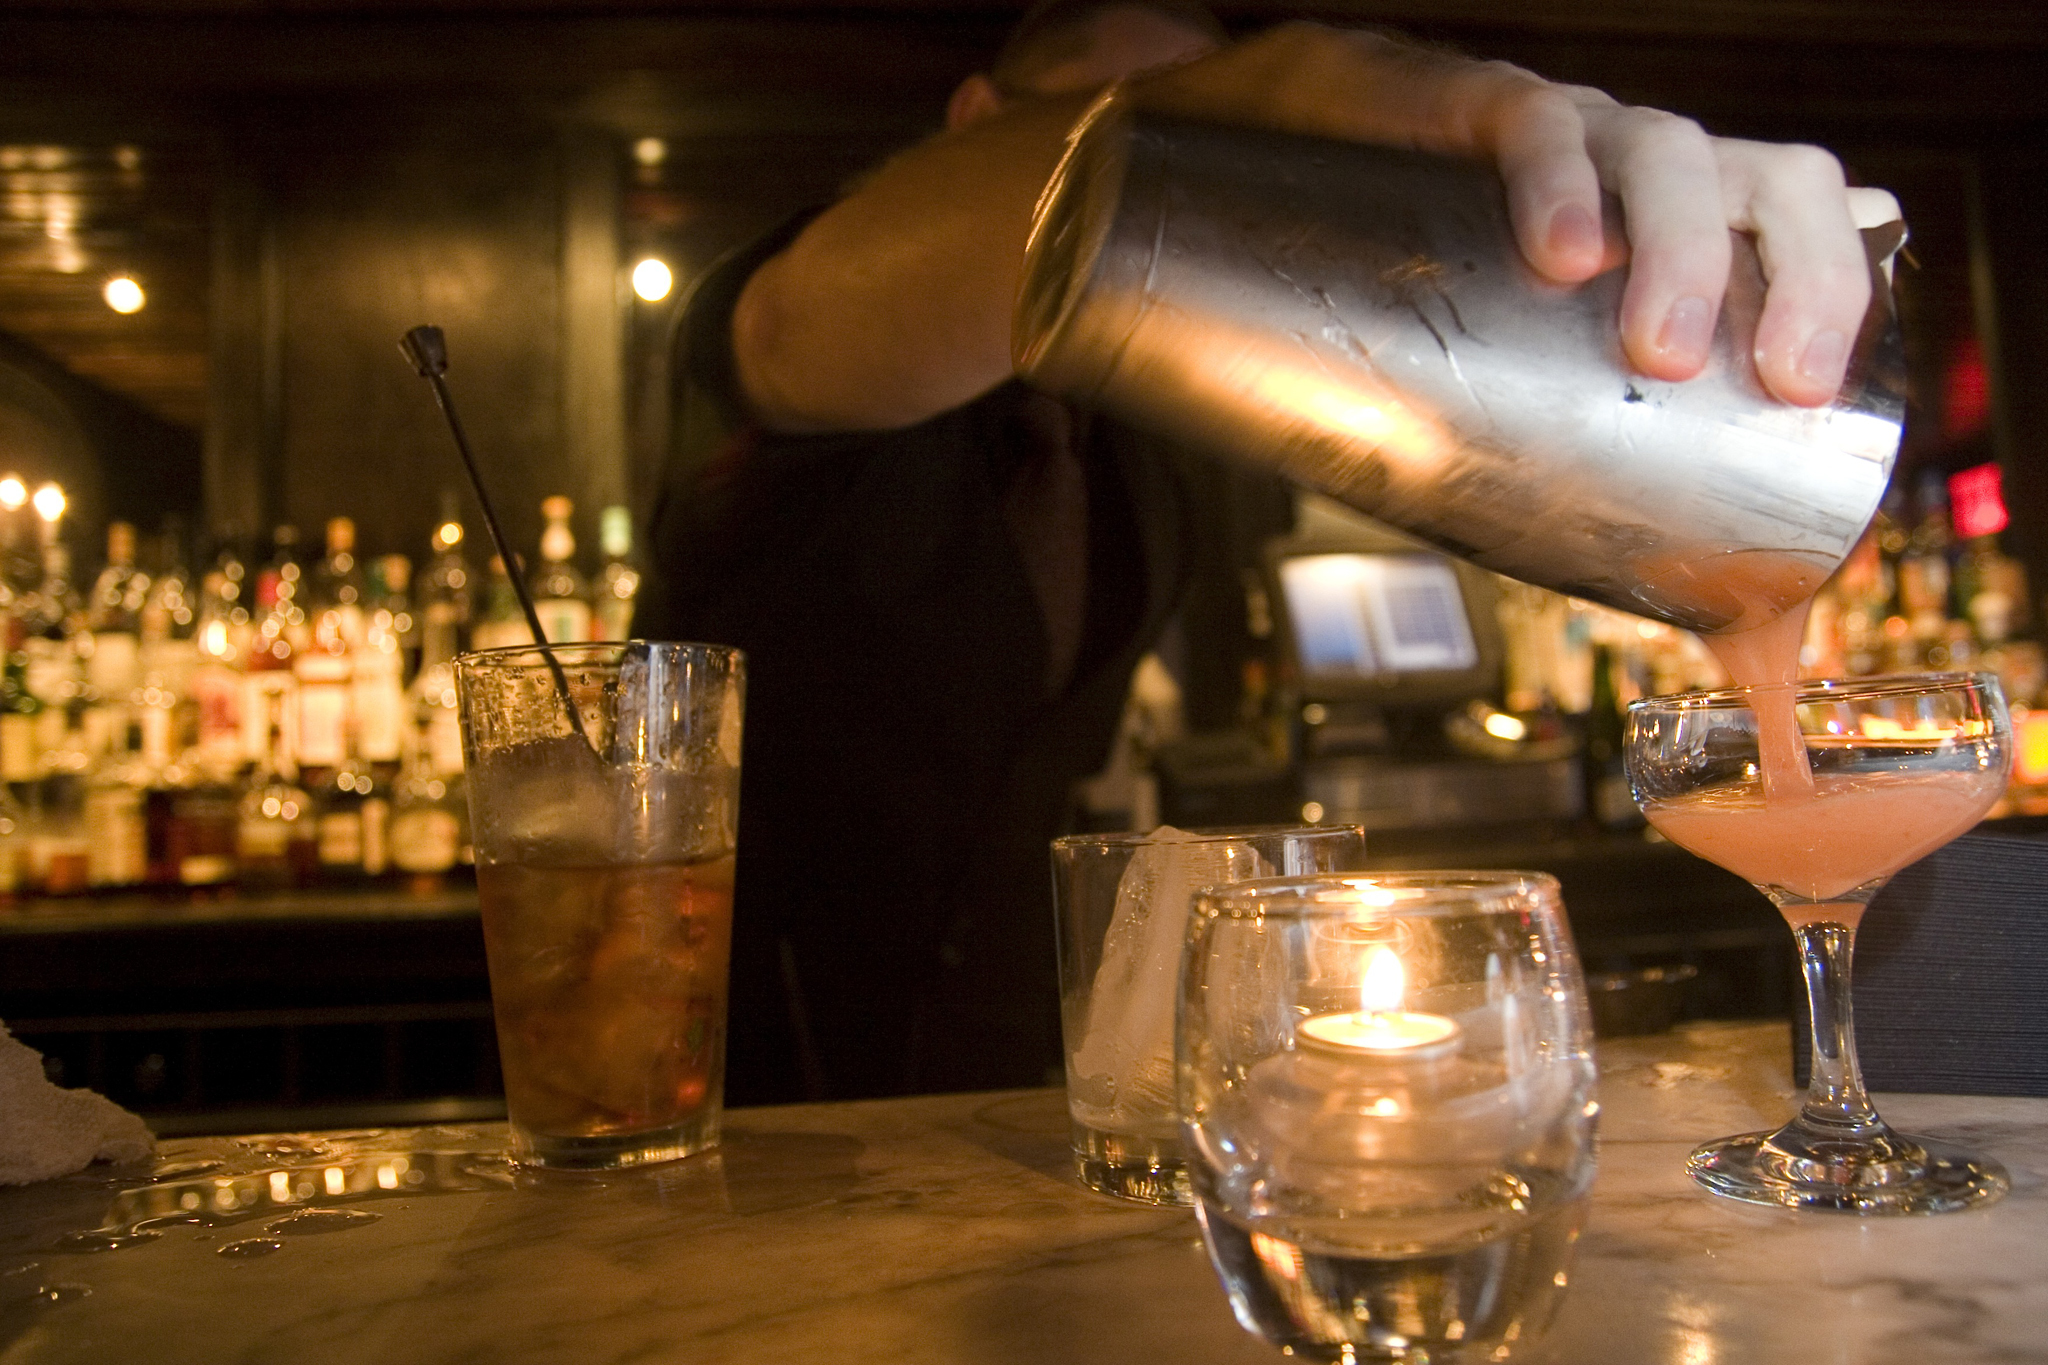 18 top bartenders tell us their favorite cocktails to order